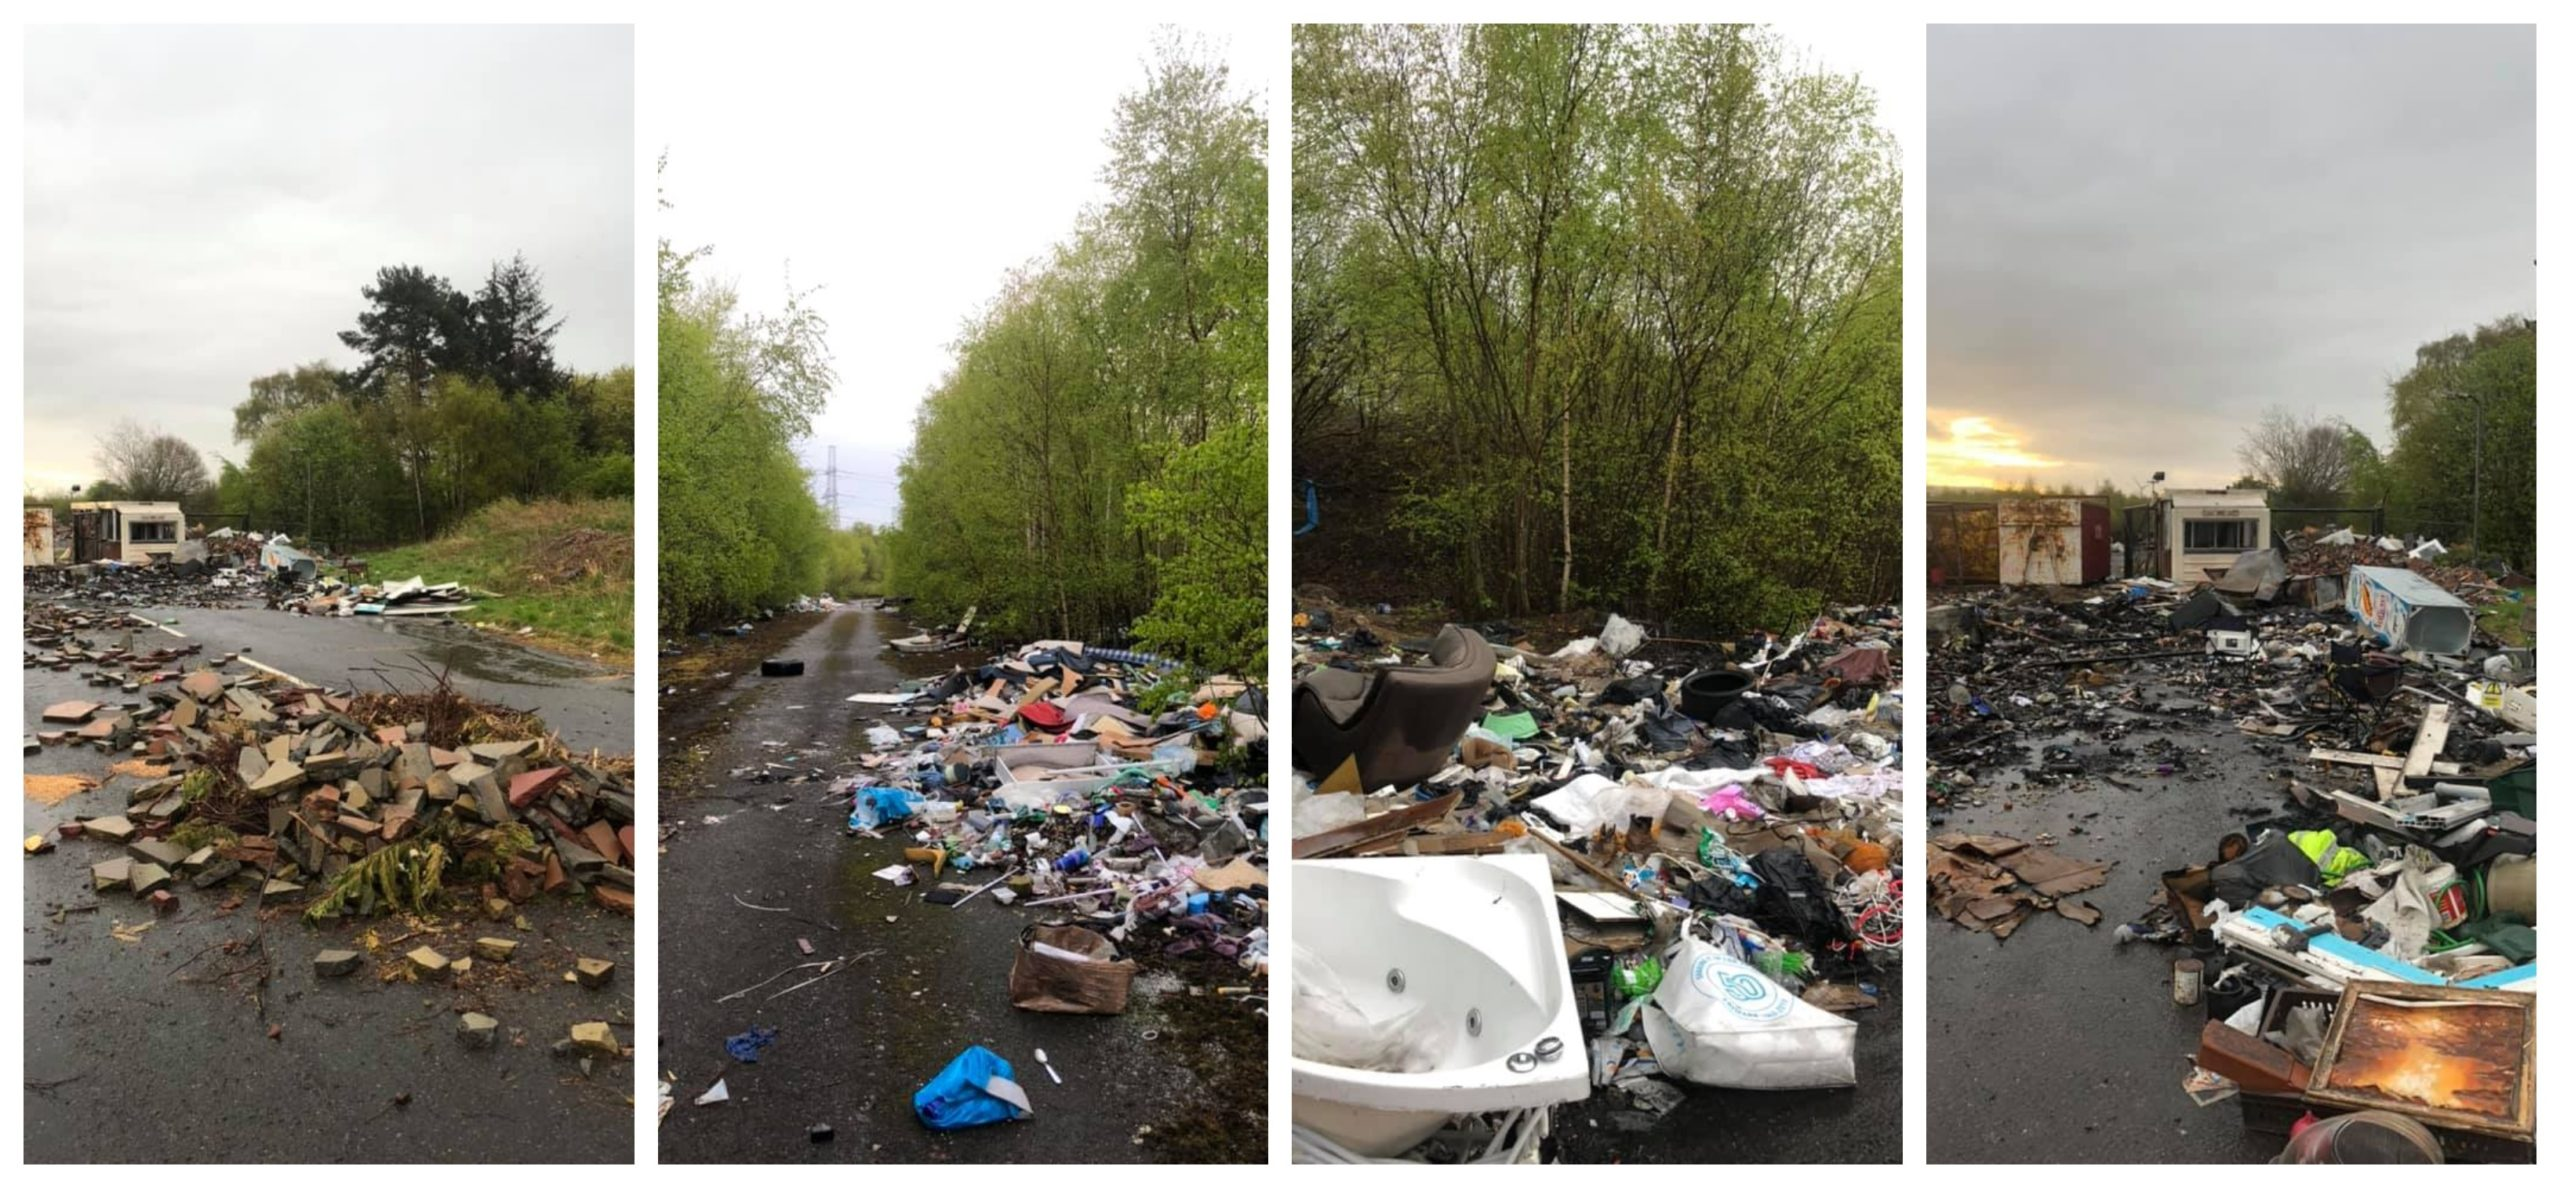 A rise in fly-tipping incidents, like these in Lochgelly, Fife, have been blamed on the recycling centres being closed.